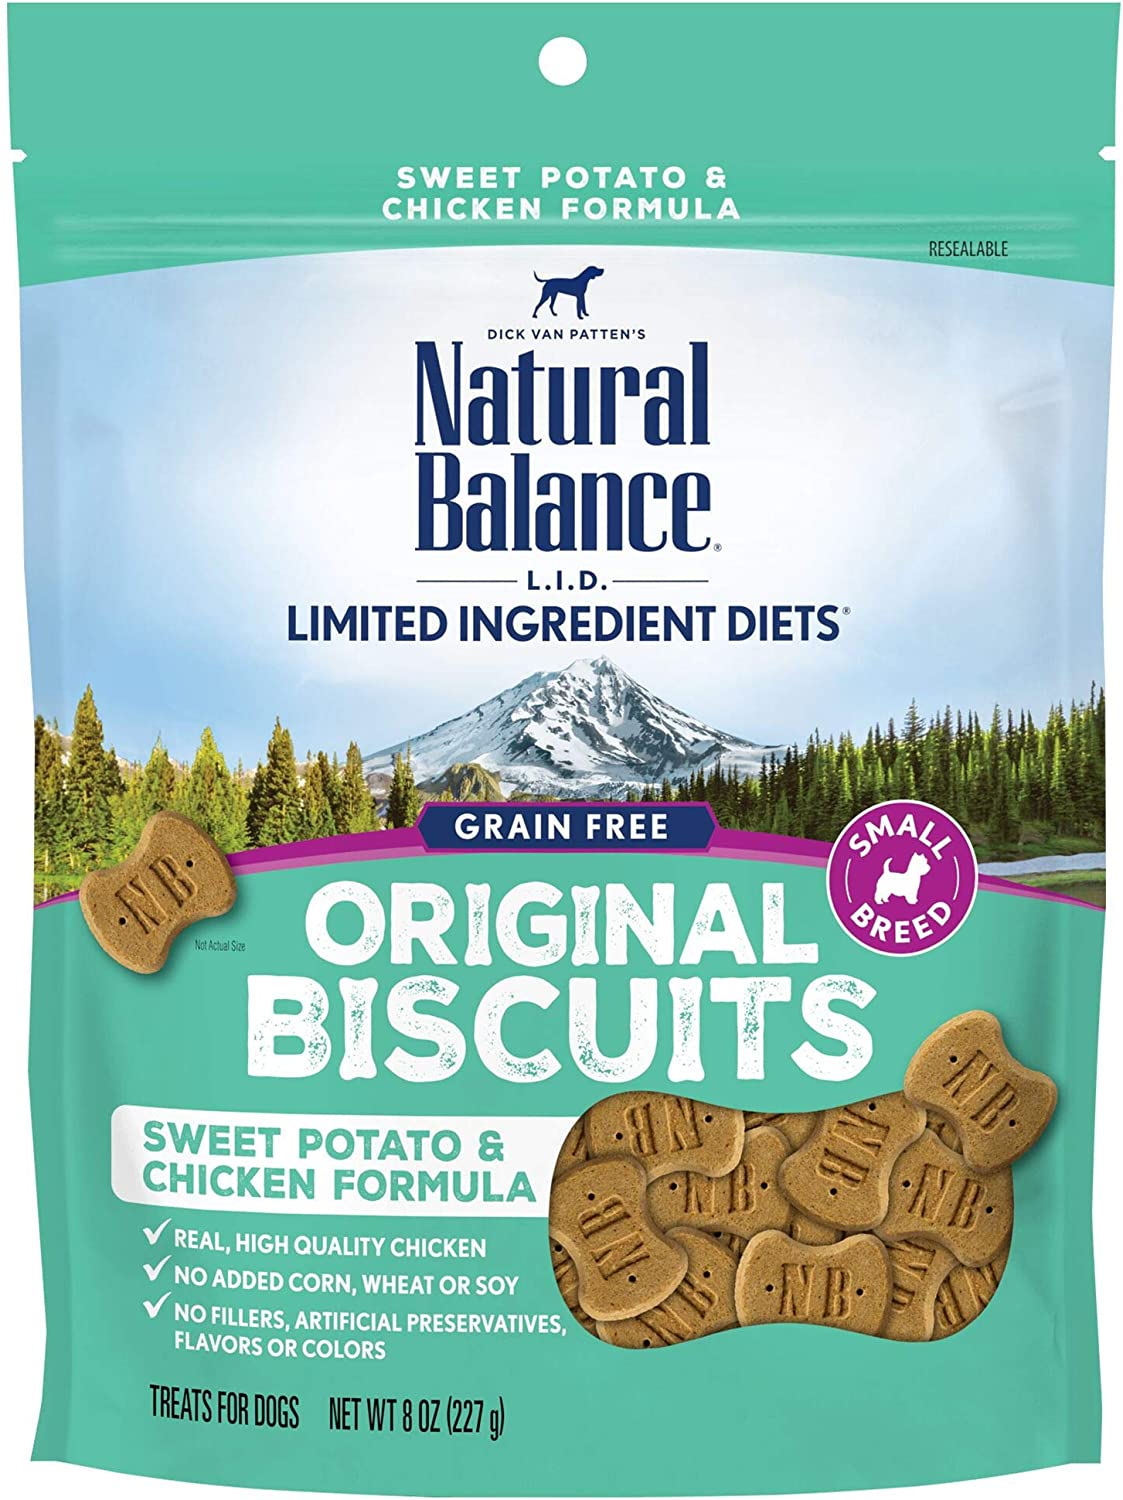 Natural Balance L.I.D. Limited Ingredient Diets Small Breed Dog Treats, Sweet Potato & Chicken Formula, 8 Ounce Pouch, Grain Free